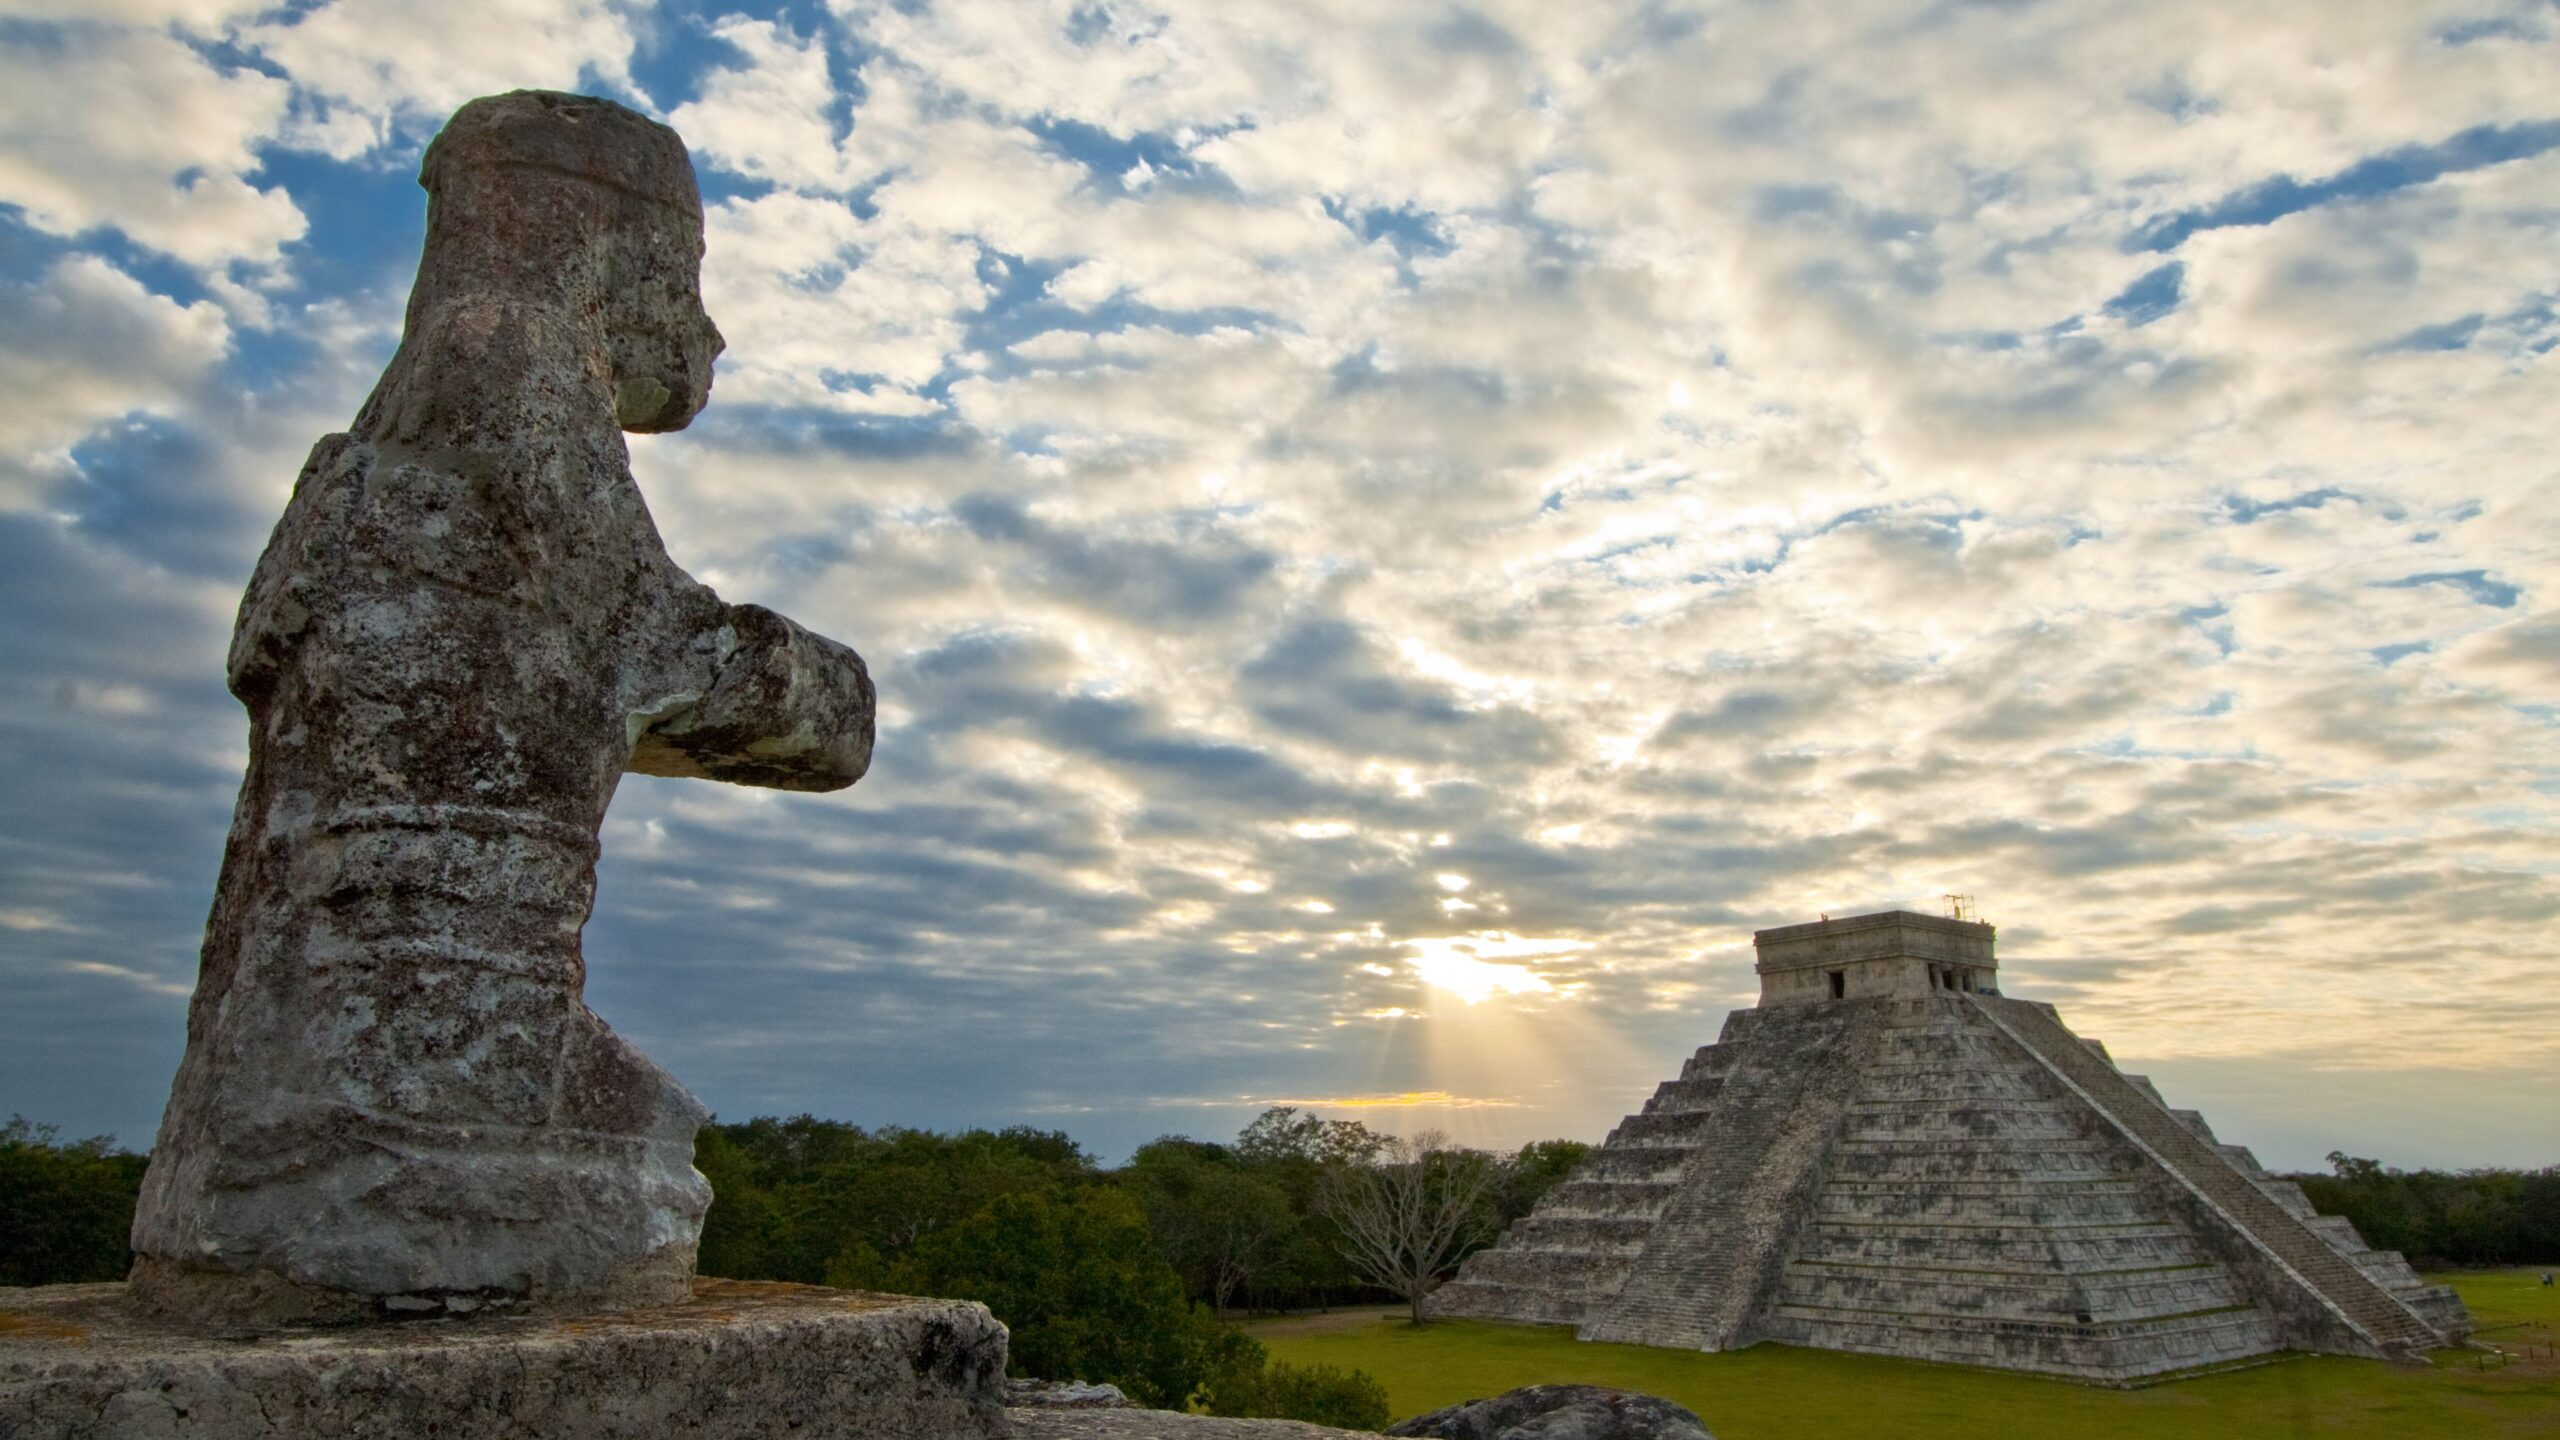 How far is Cancun to Chichen Itza